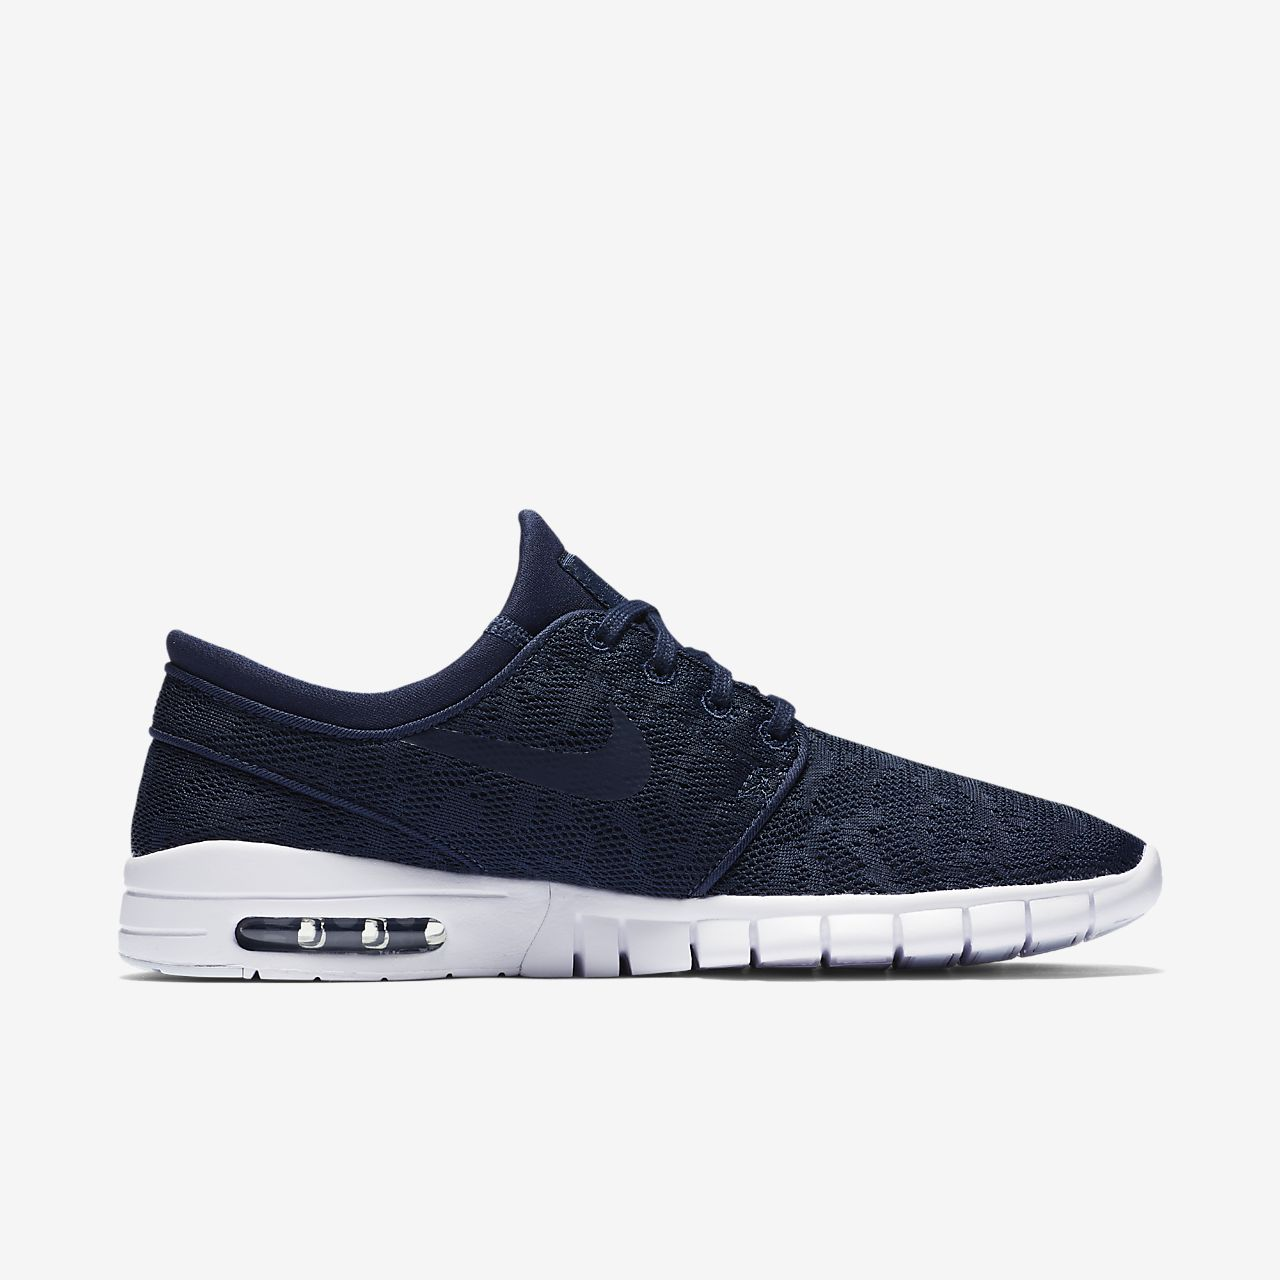 6d508251a591 Welcome to Lakeview Comprehensive Dentistry. nike black sb shoes